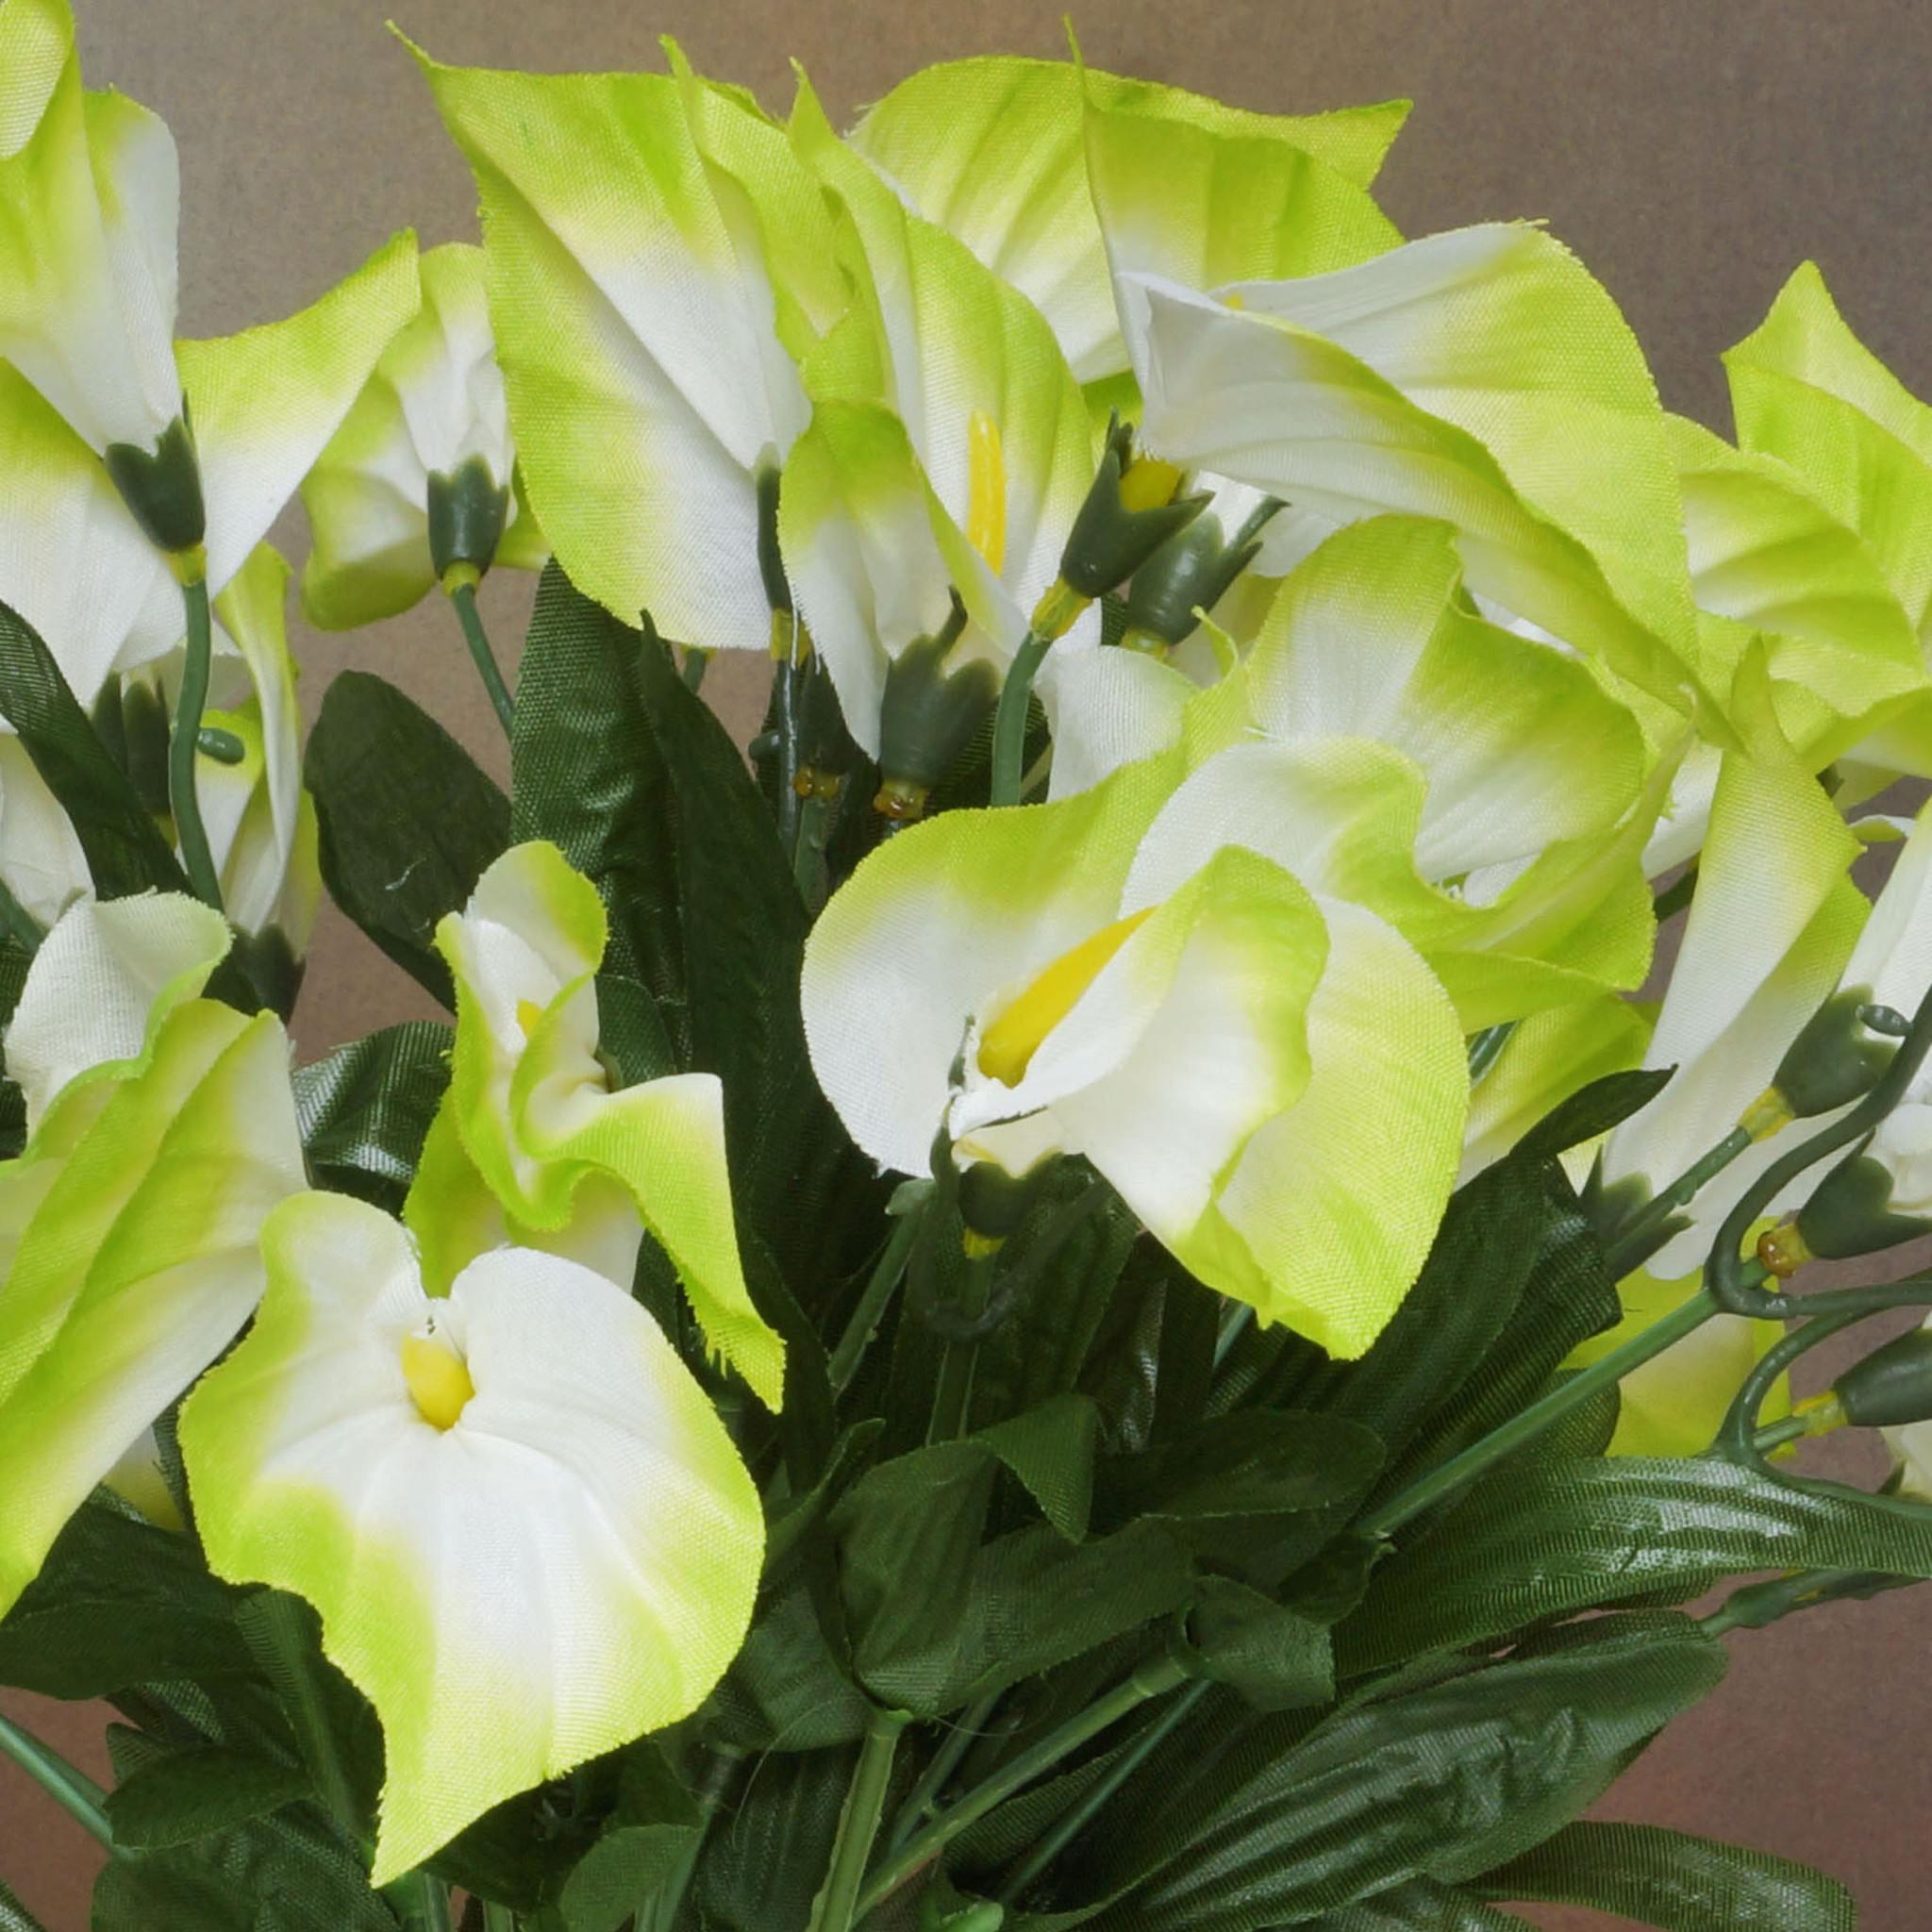 12 bush 252 pcs lime artificial mini calla lilies flower wedding 252 wholesale artificial mini calla lilies wedding flower vase centerpiece decor lime izmirmasajfo